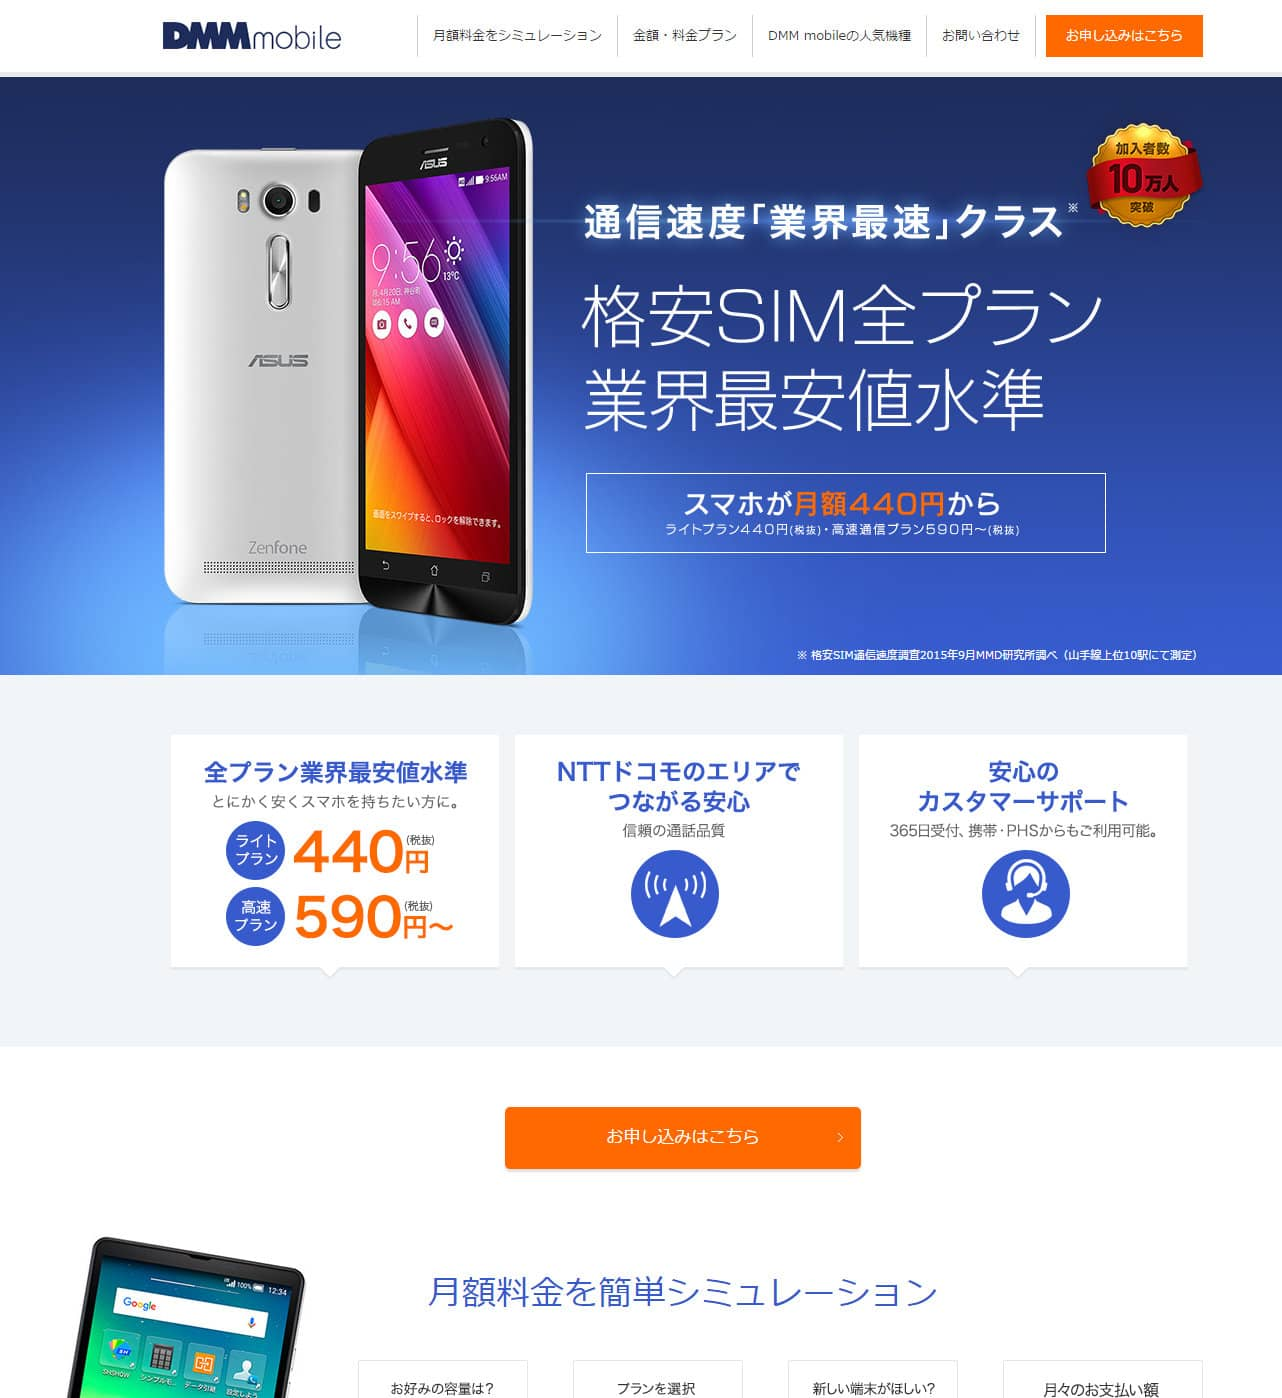 DMM mobileの商品画像